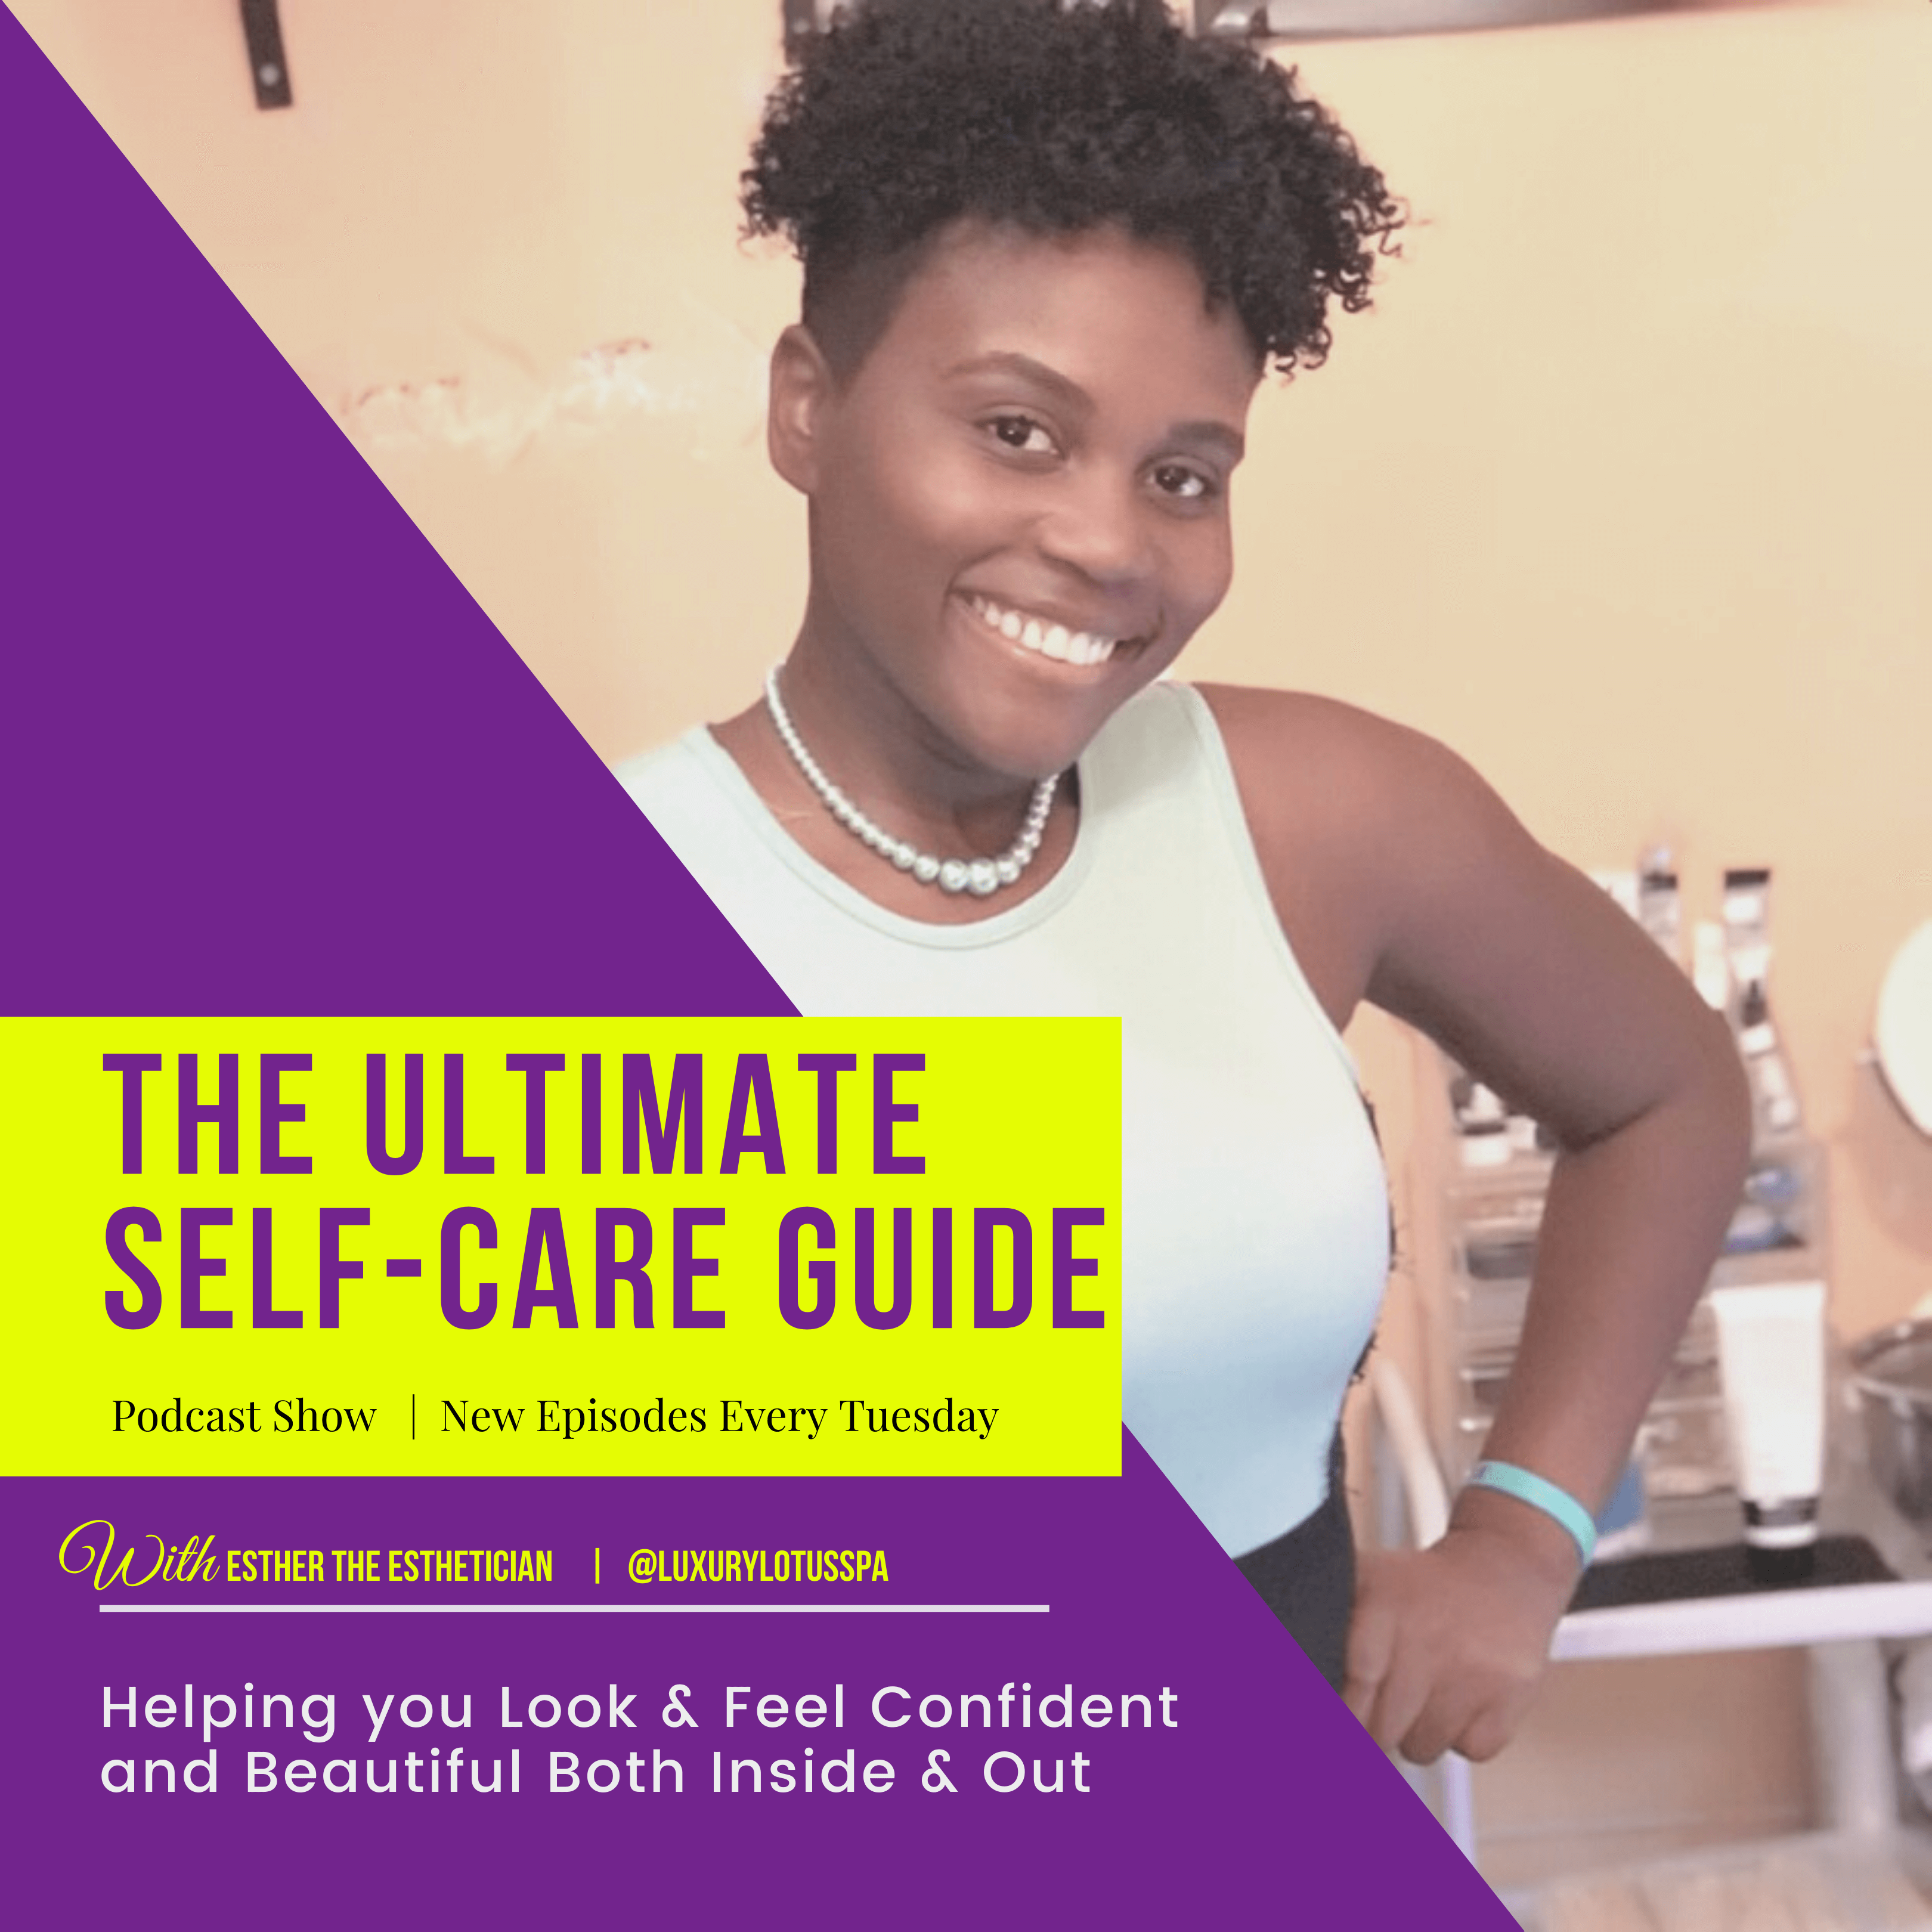 The Ultimate Self Care Podcast Show by Esther Nelson in Tampa, florida, influencer and public speaker all things beauty and selfcareBest acne scar treatment near me Esther the esthetician nelson the ultimate self care guide for clear smooth and even skin in tampa florida (FL)Luxury Lotus Spa online store spa boutique helping melanin beauties clear up acne and acne scars naturally for men and women with darker skin tone african american hatian jamaican, afro latinas